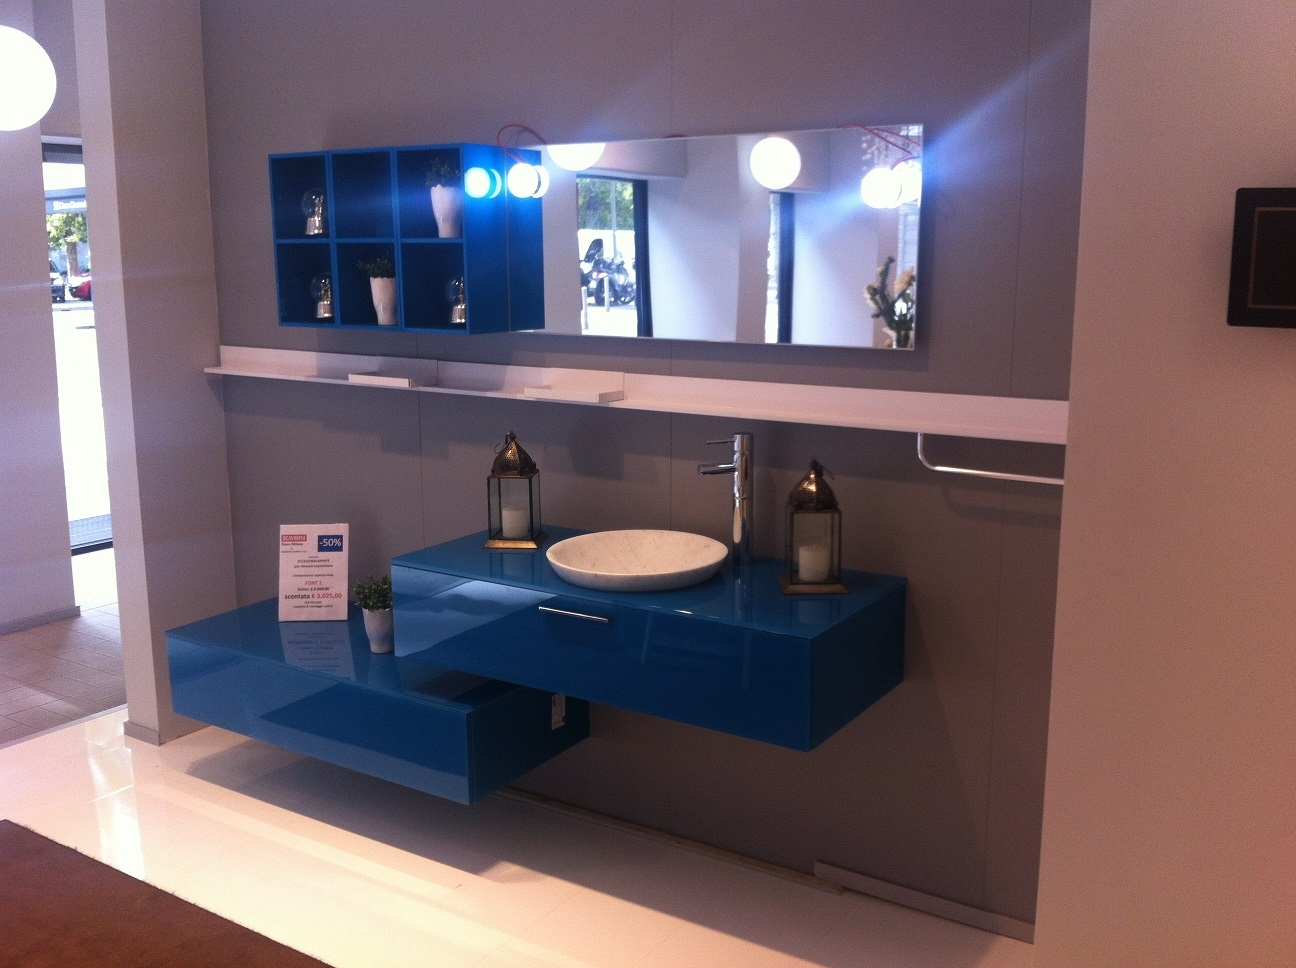 Awesome Arredo Bagno Outlet Pictures - Orna.info - orna.info